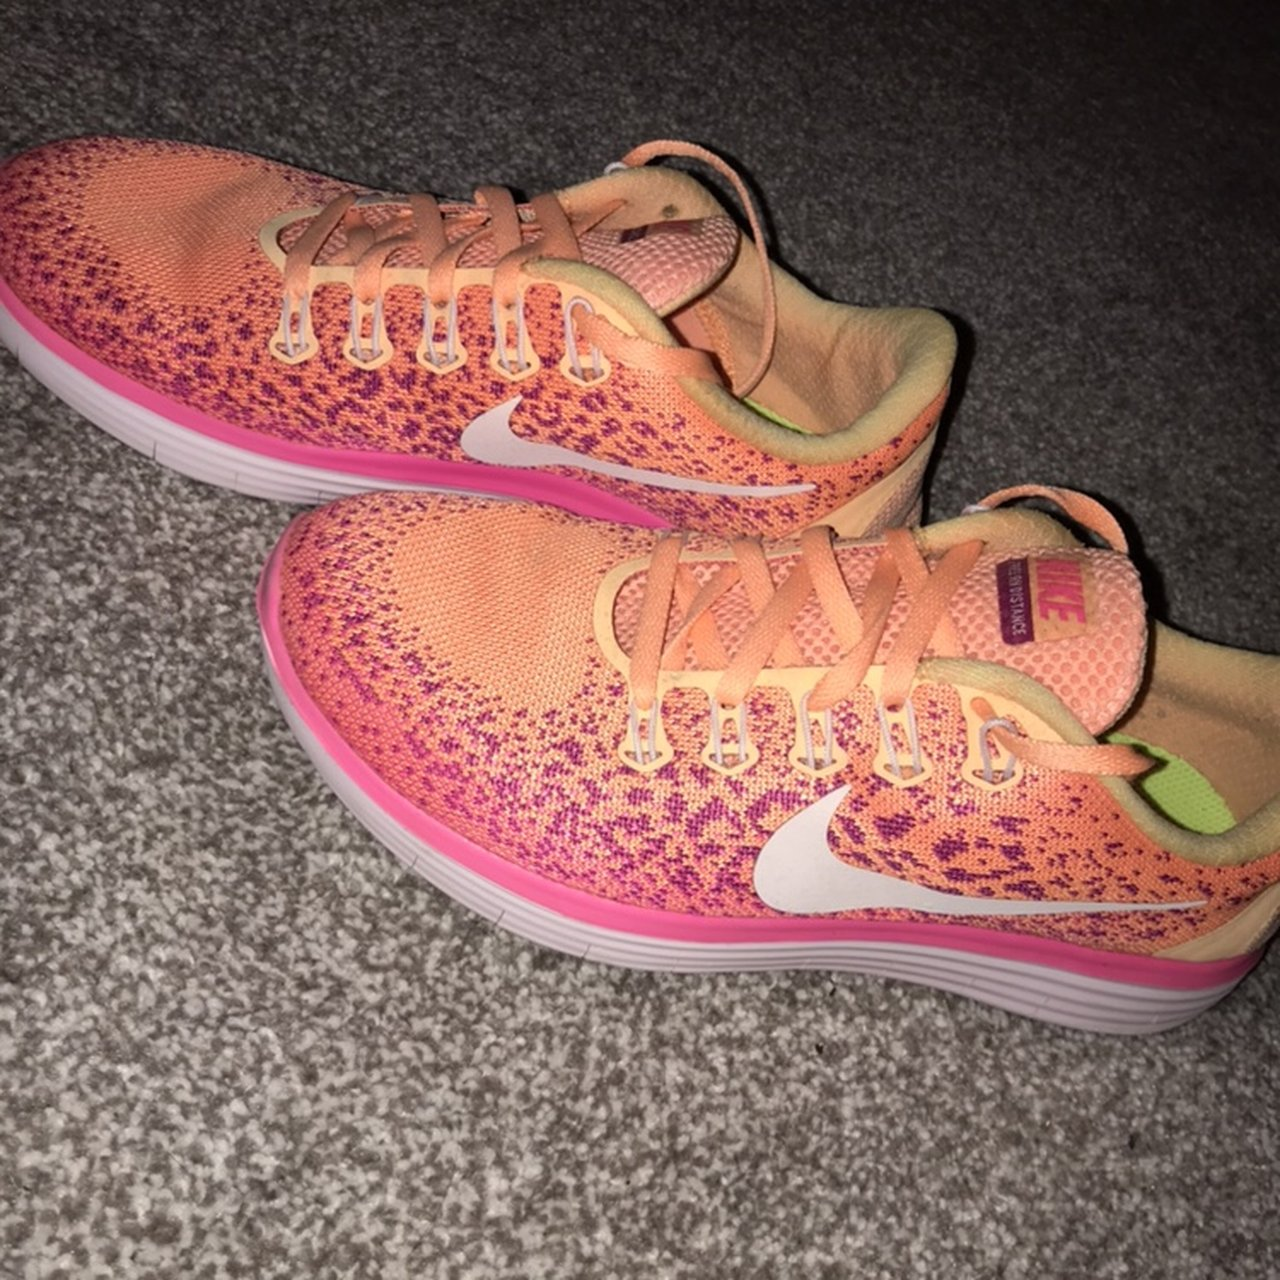 263bb359f283 Women s nike running trainers... size 5.5 worn but not much - Depop